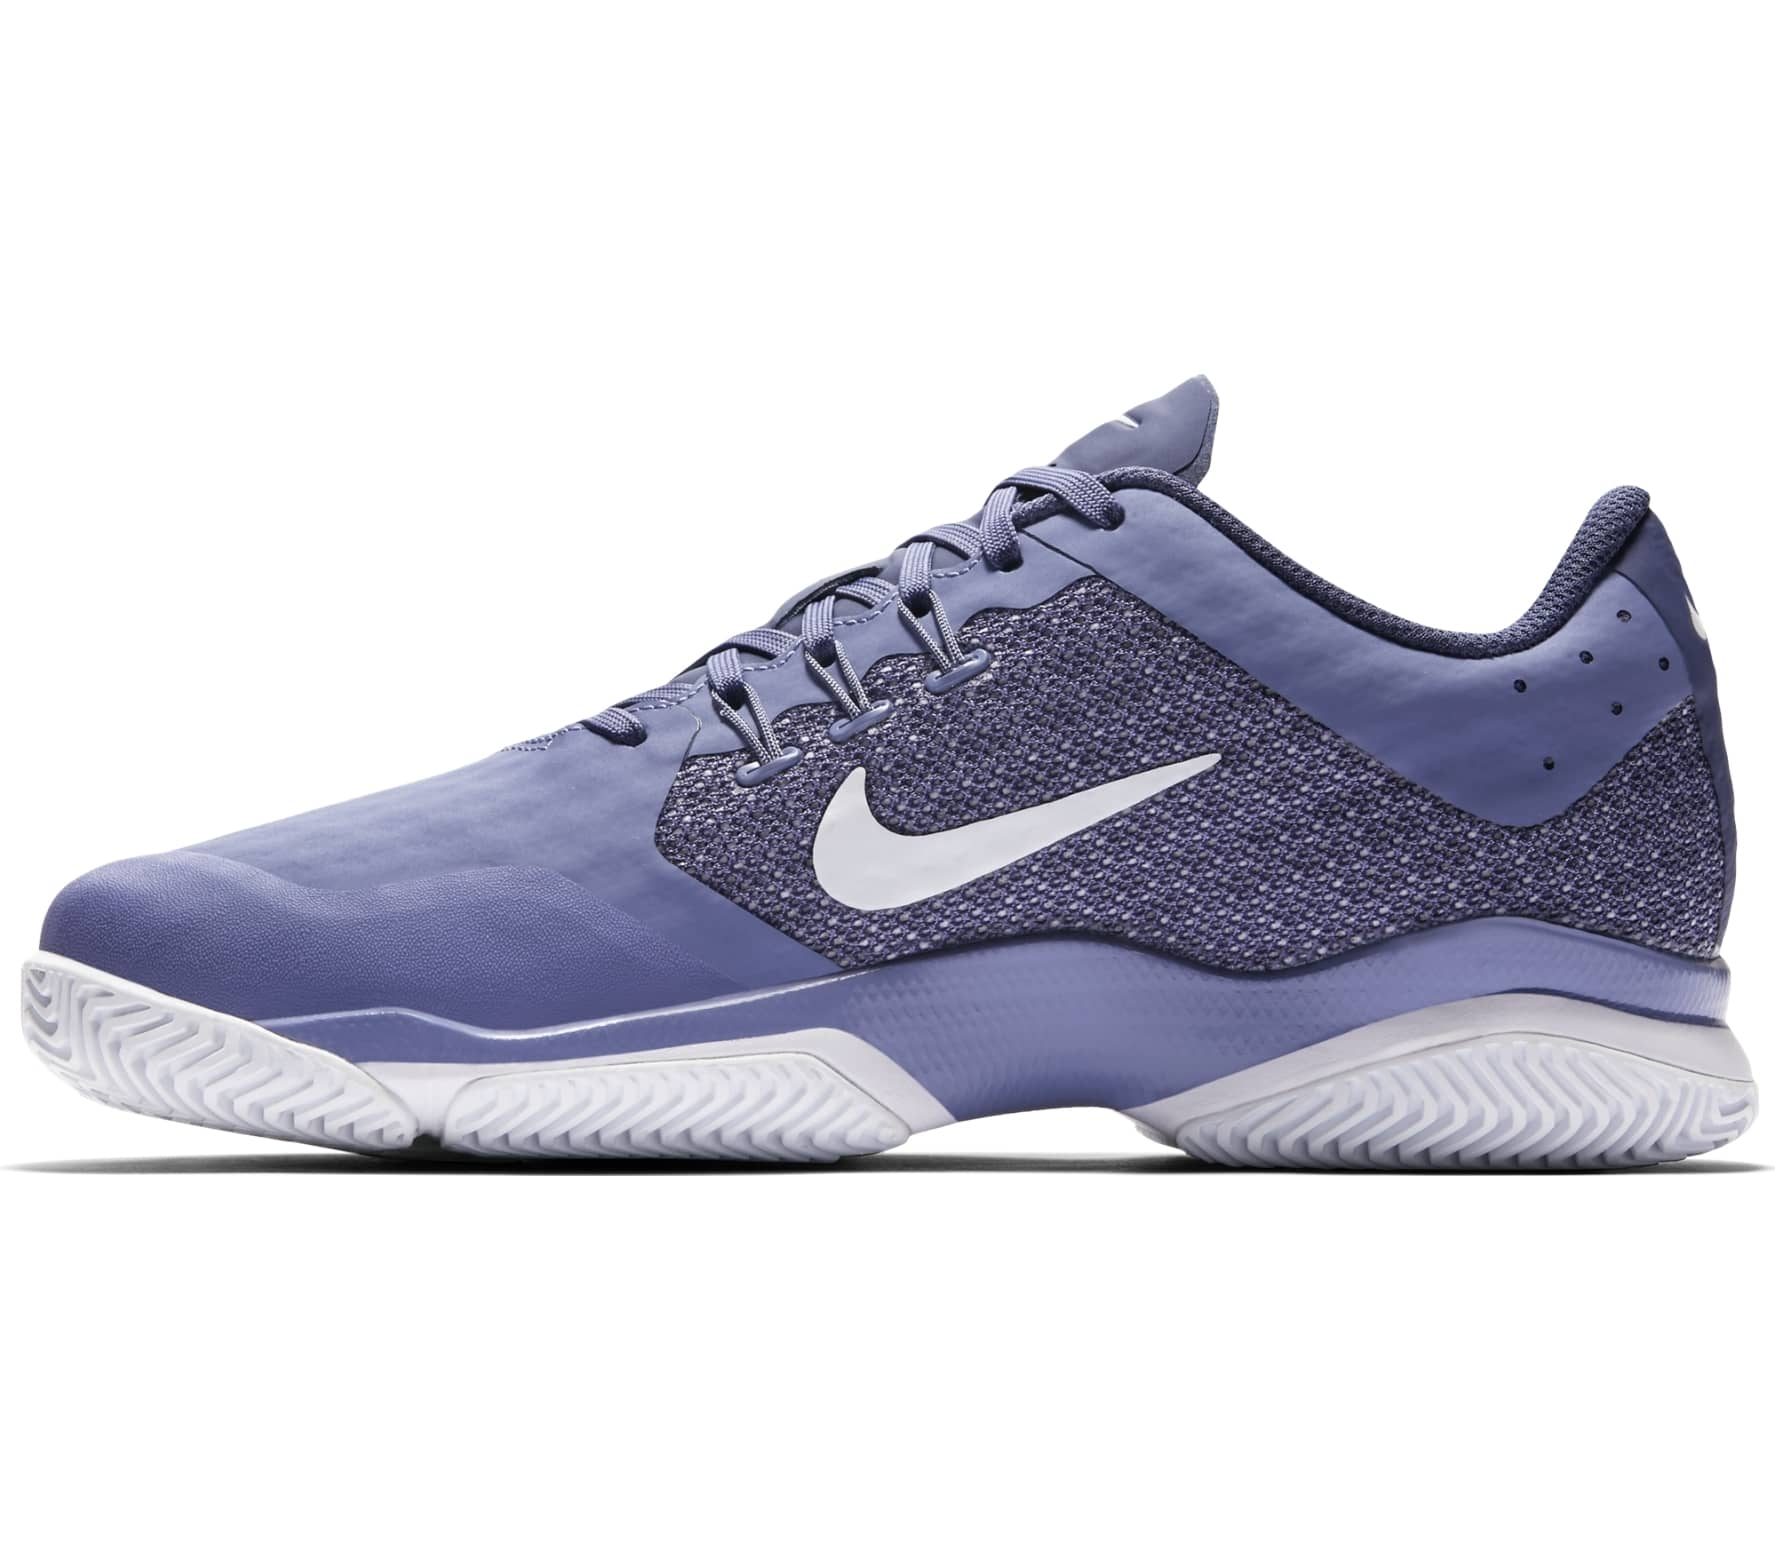 Nike Zoom Ultra Tennis Shoes For Hard Courts